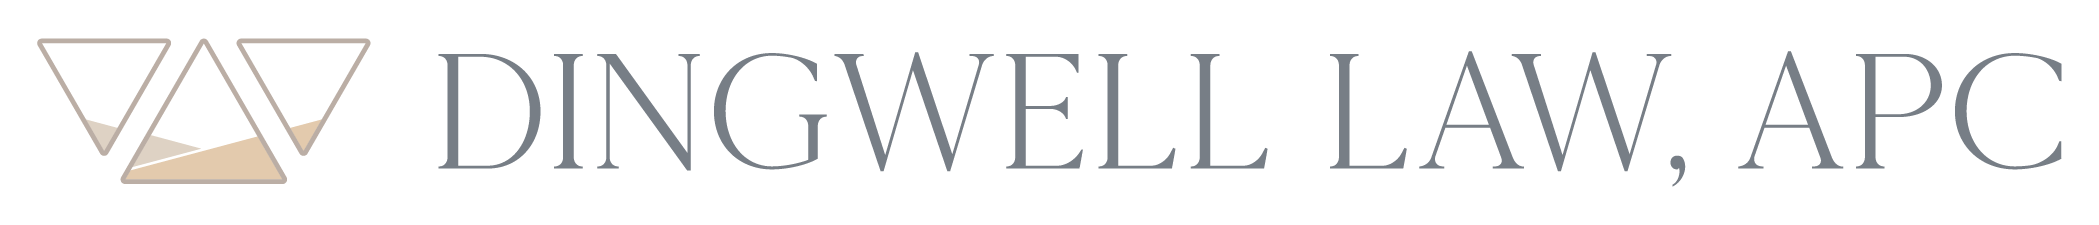 Dingwell Law